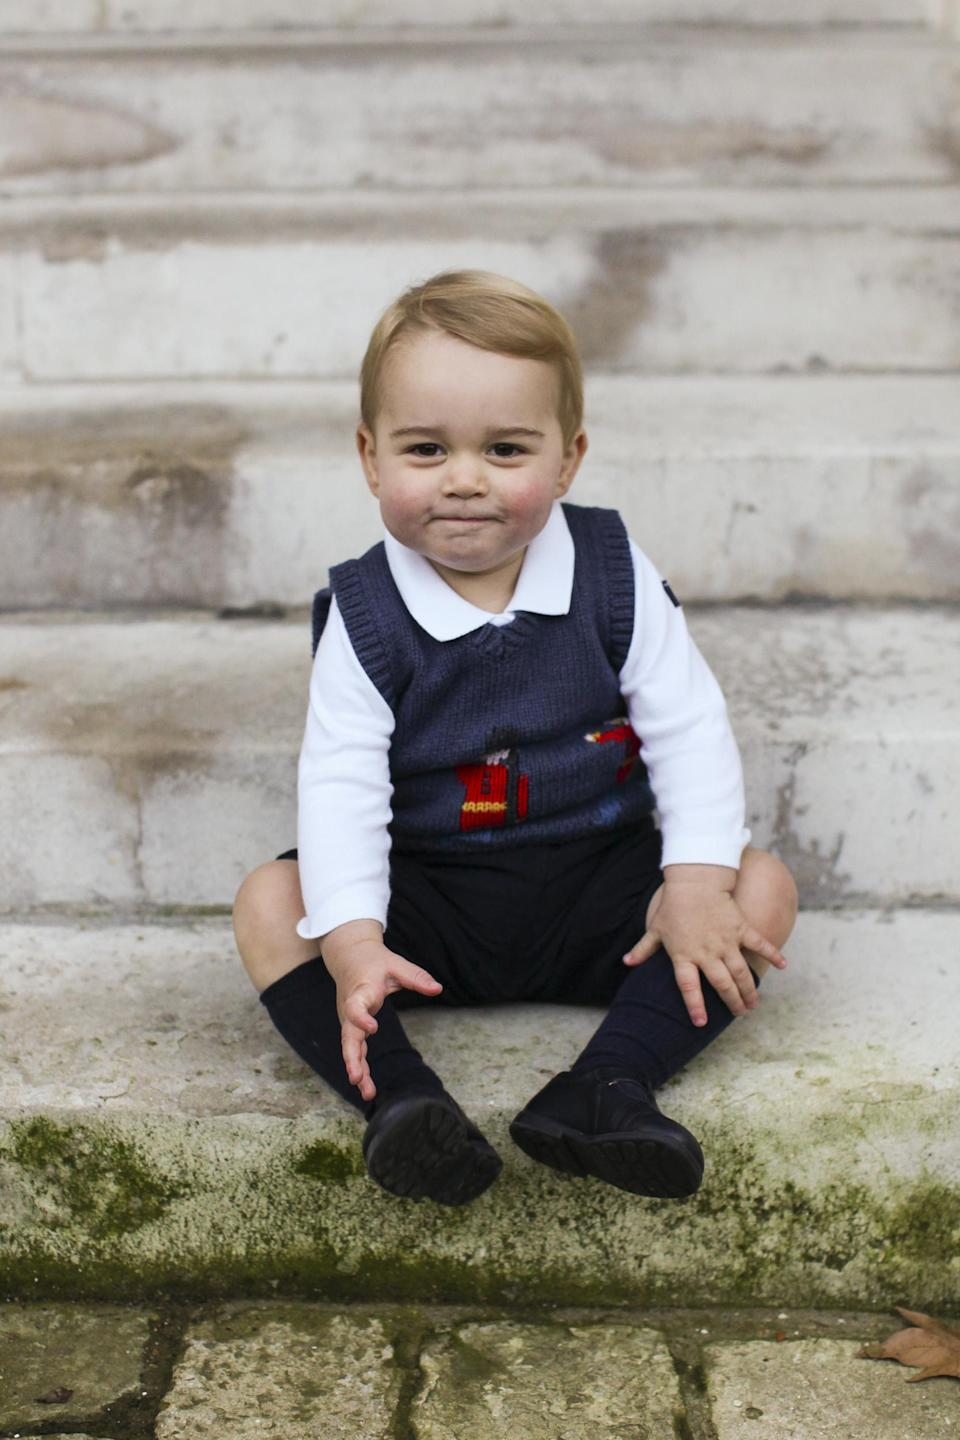 Prince George in 2014 (HRH The Duke and Duchess of Cambridge)